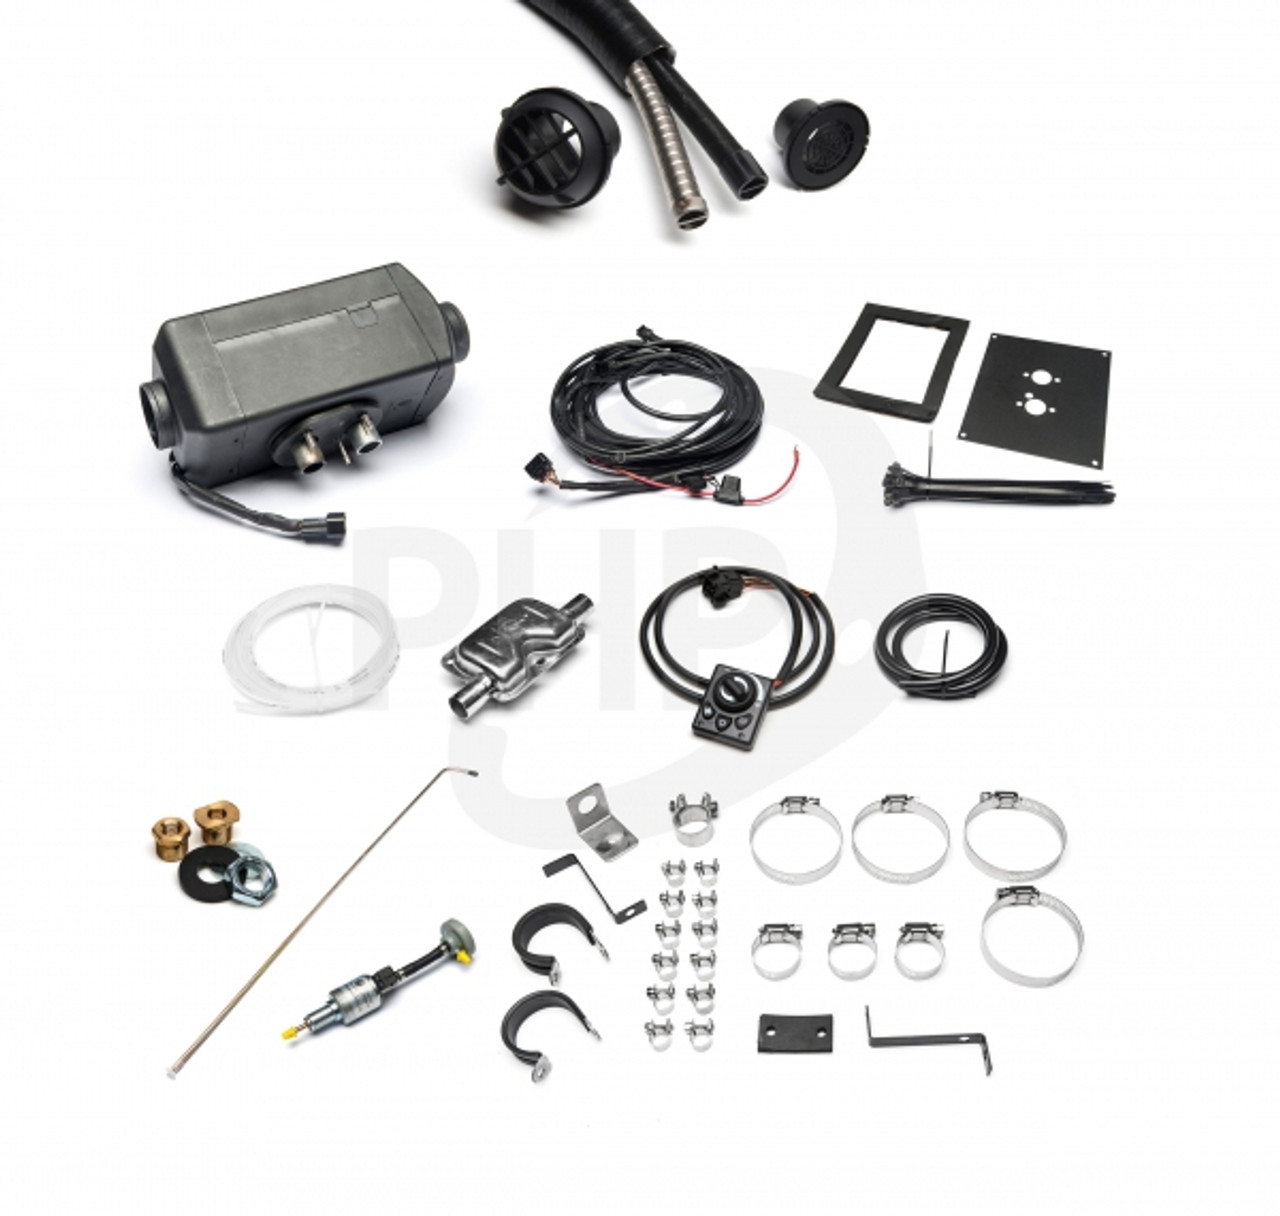 Parking Heater Products Vehicle Kit Air Heater / Webasto Air Top 2000ST Style